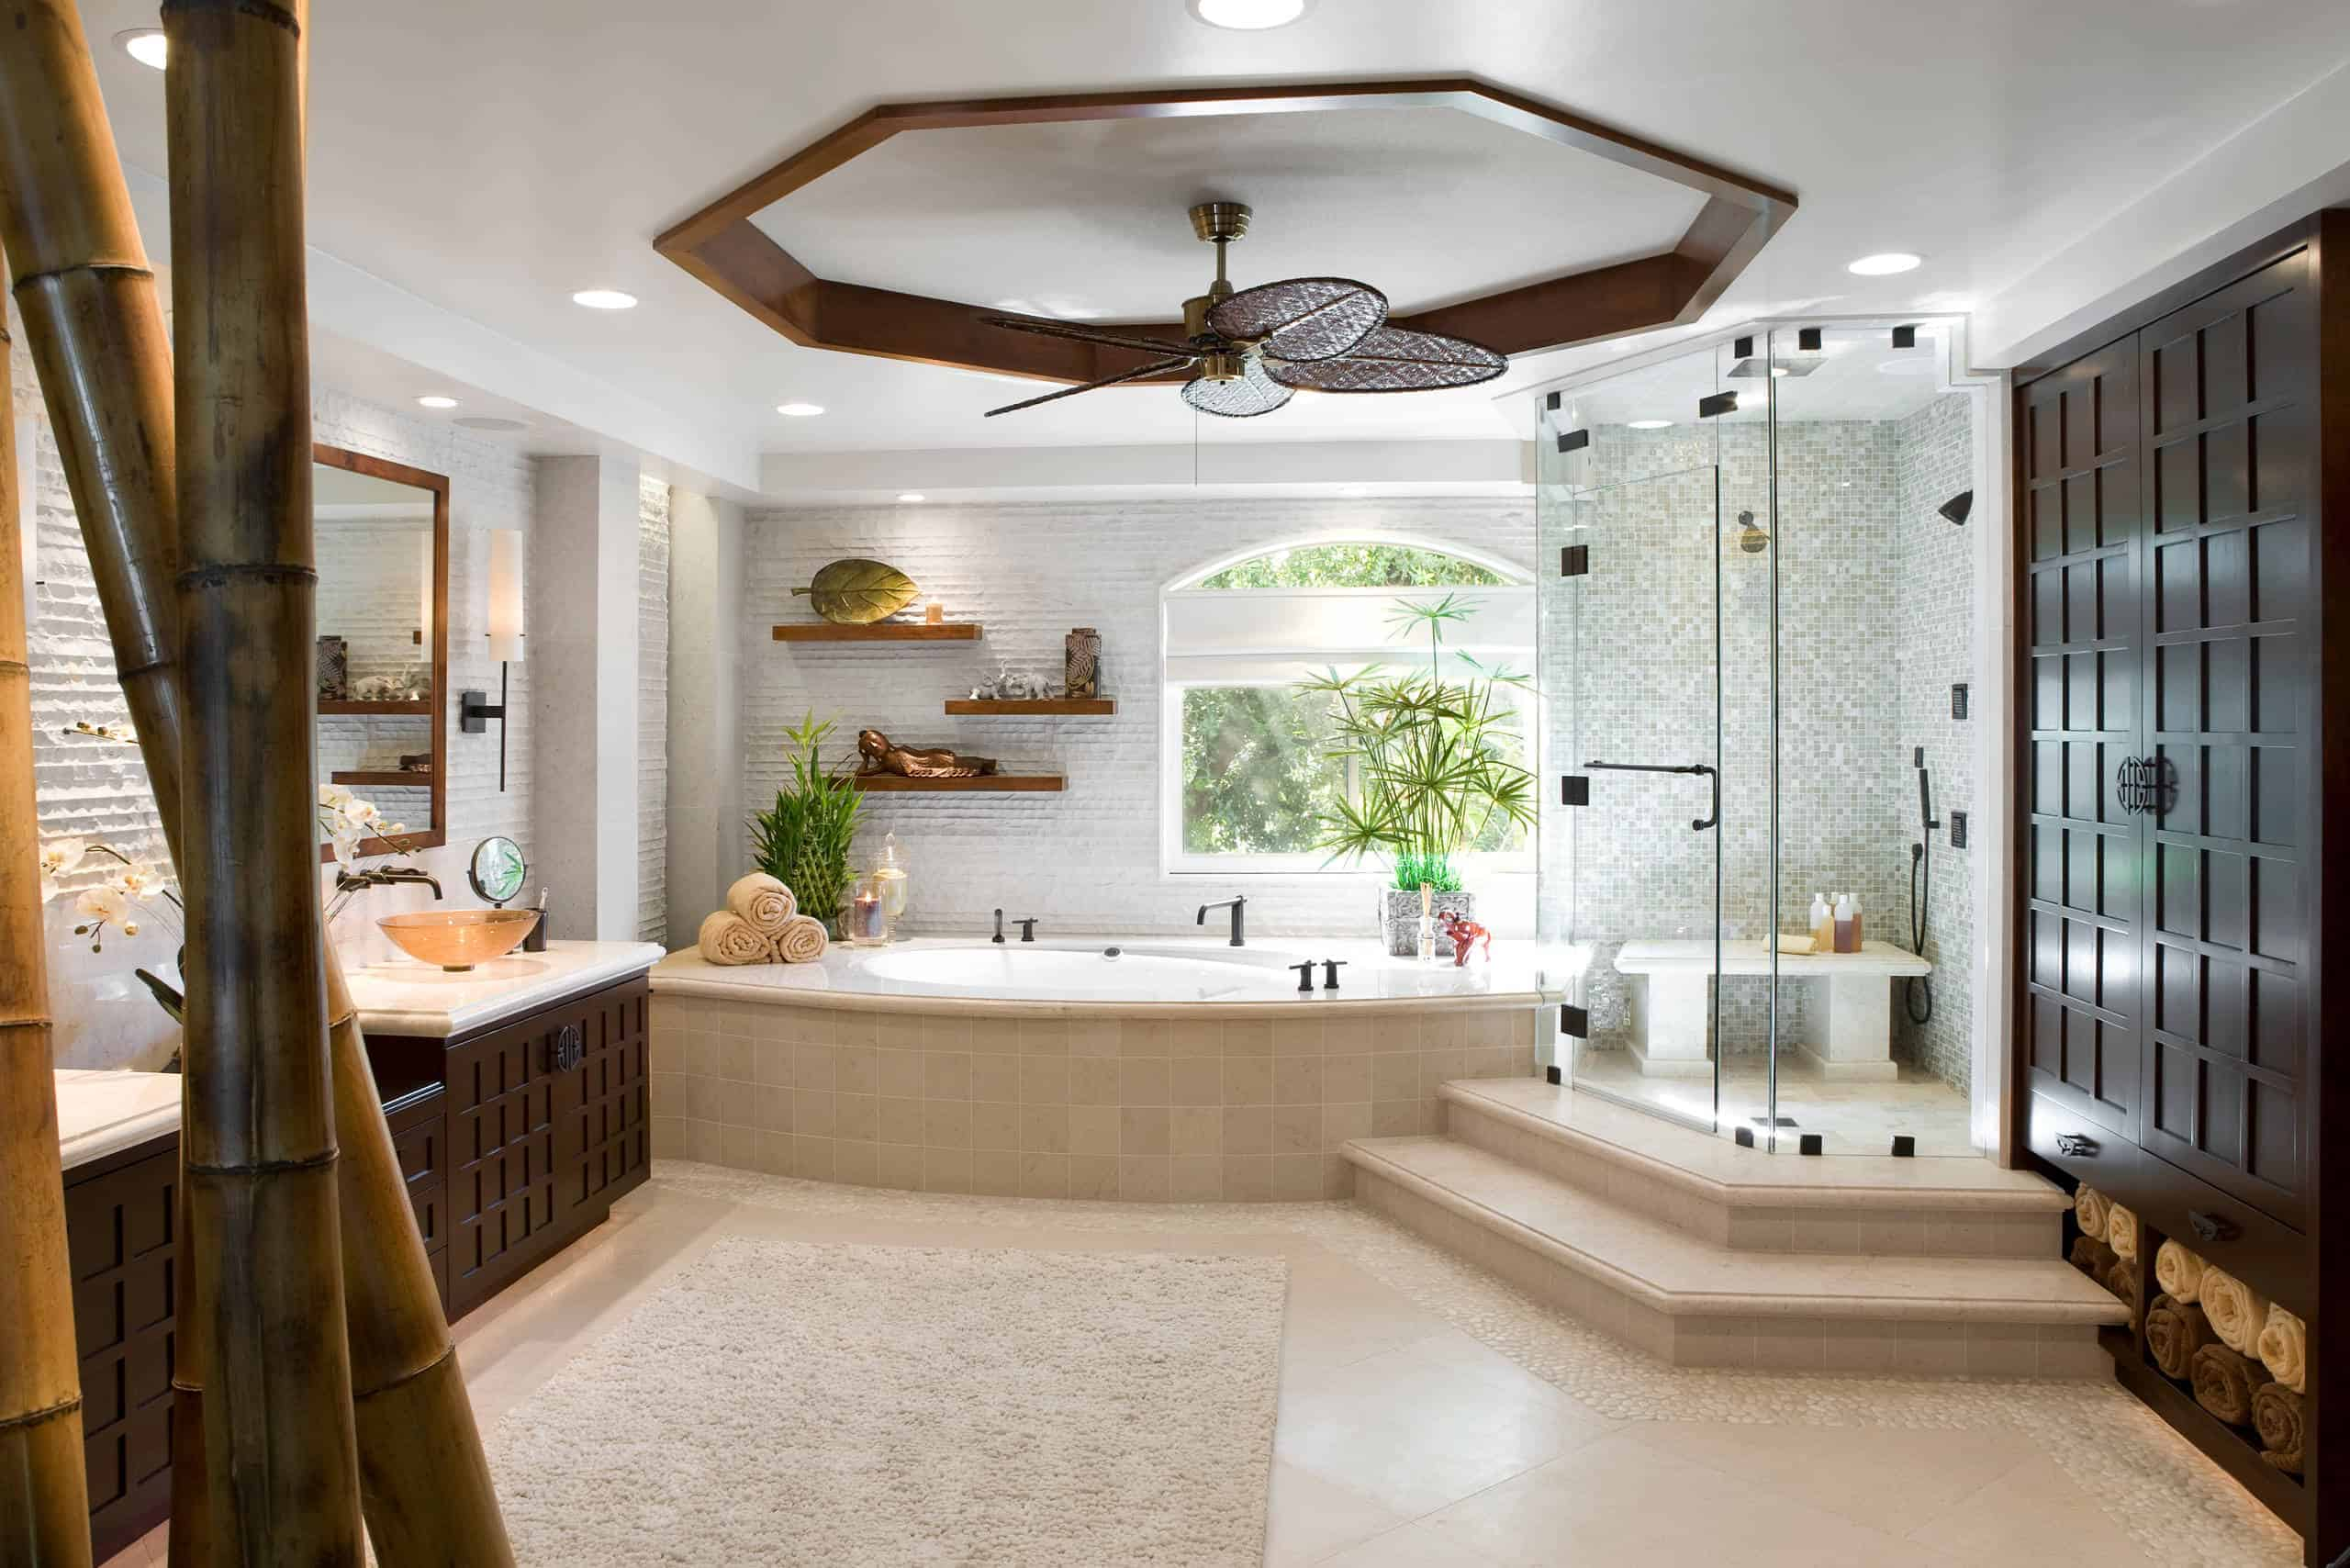 ceiling fans for ventilation of big and small bathroom designs with floor concepts